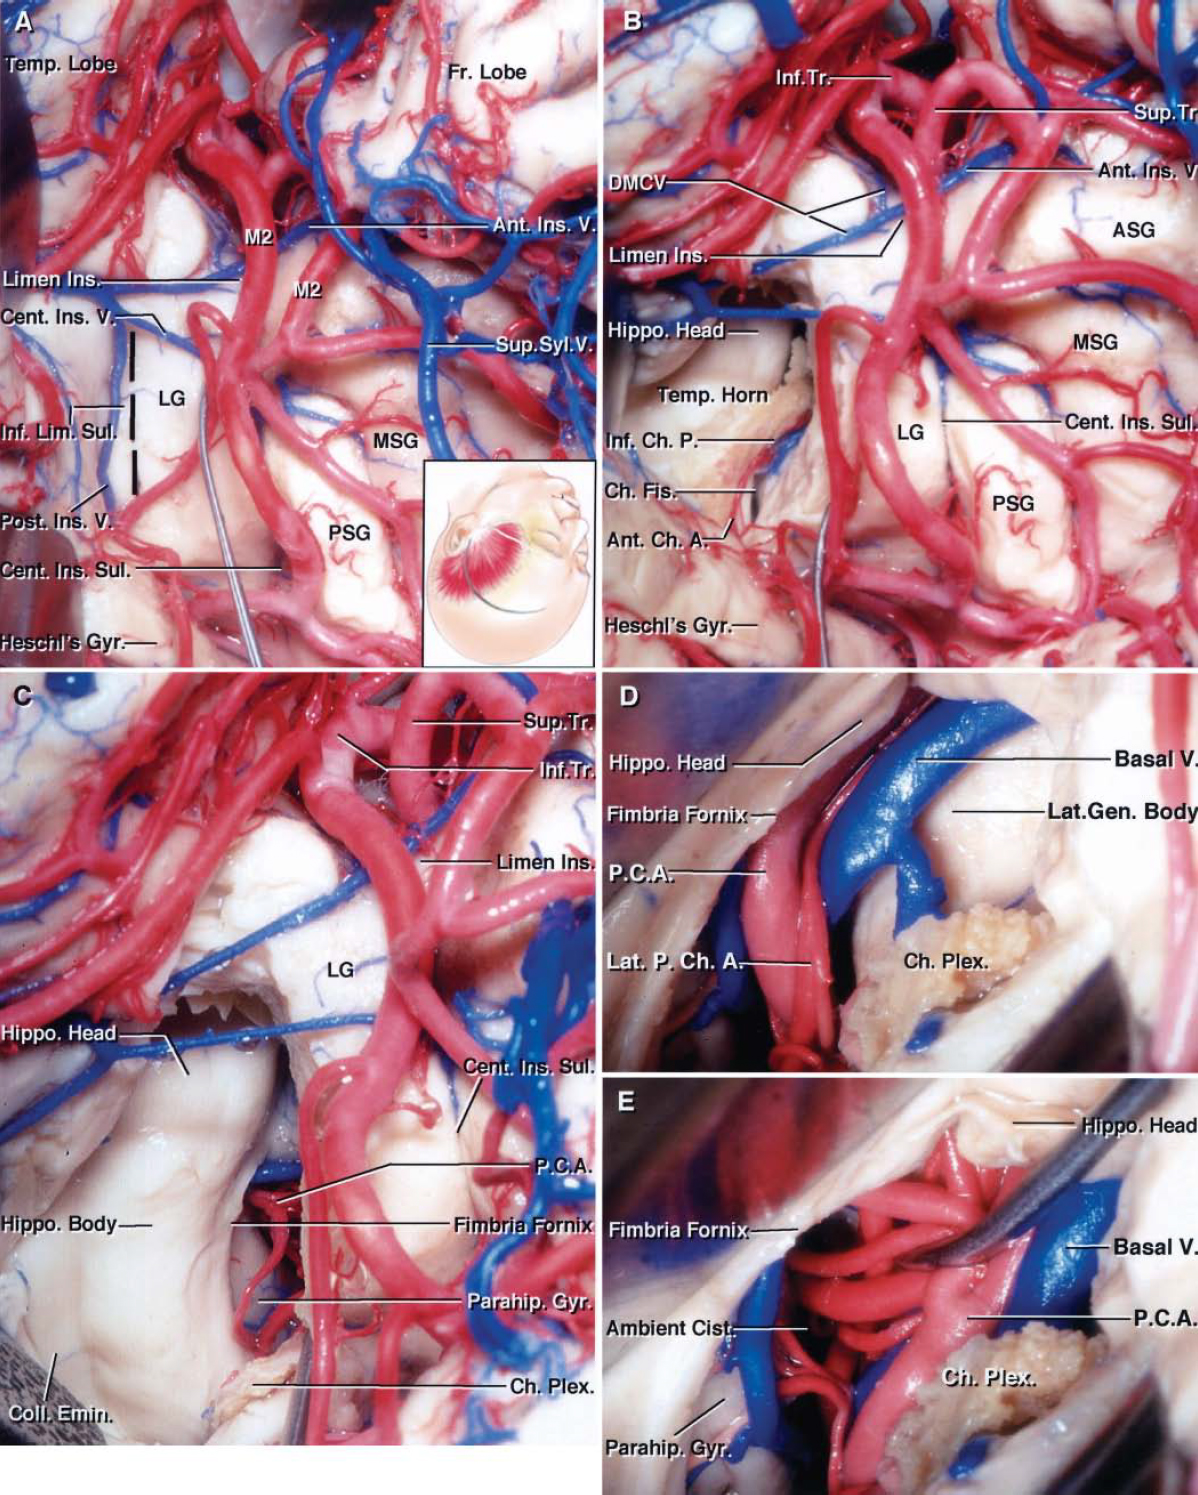 FIG. 14. Photographs obtained during a cadaveric dissection involving the left transylvian transchoroidal approach to the basal cisterns (A–E). A: Left frontotemporal exposure. The inset shows the position of the head and skin incision for the frontotemporal craniotomy. The sylvian fissure has been opened and the temporal operculum has been retracted to expose the anterior half of the insula. The M2branches have been retracted to show the position of the incision (dashed black line) along the inferior limiting sulcus. The cortical incision through the inferior limiting sulcus begins approximately 1 to 2 cm posterior to where the anterior end of the long gyrus fuses with the temporal pole and extends posteriorly approximately 1.5 to 2 cm. The anterior one half of the inferior limiting sulcus is devoid of larger perforating arteries. The incision is made lateral to the inferior MCA trunk between the M2branches, which run parallel to the inferior limiting sulcus. The cortical incision along the inferior limiting sulcus can be located medially, as shown in this photograph, or lateral to the posterior insular vein without sacrificing the vessel. B: The cortical incision, at a depth of approximately 0.5 cm in most hemispheres, provides access to the anterior portion of the temporal horn. The amygdala is located at the anterior edge of the cortical incision in the anterior wall of the temporal horn. This approach exposes the head and body of the hippocampus. The inferior choroidal point, the site at which the anterior choroidal artery passes through the choroidal fissure, is located near the middle of the exposure. The distance between the inferior limiting sulcus and inferior choroidal point is approximately 11 mm. C: The choroidal fissure has been opened by dividing the attachment of the choroid plexus to the fimbria of the fornix, and the choroid plexus has been elevated toward the thalamus. This approach exposes the hippocampus and collateral eminence in the floor of t